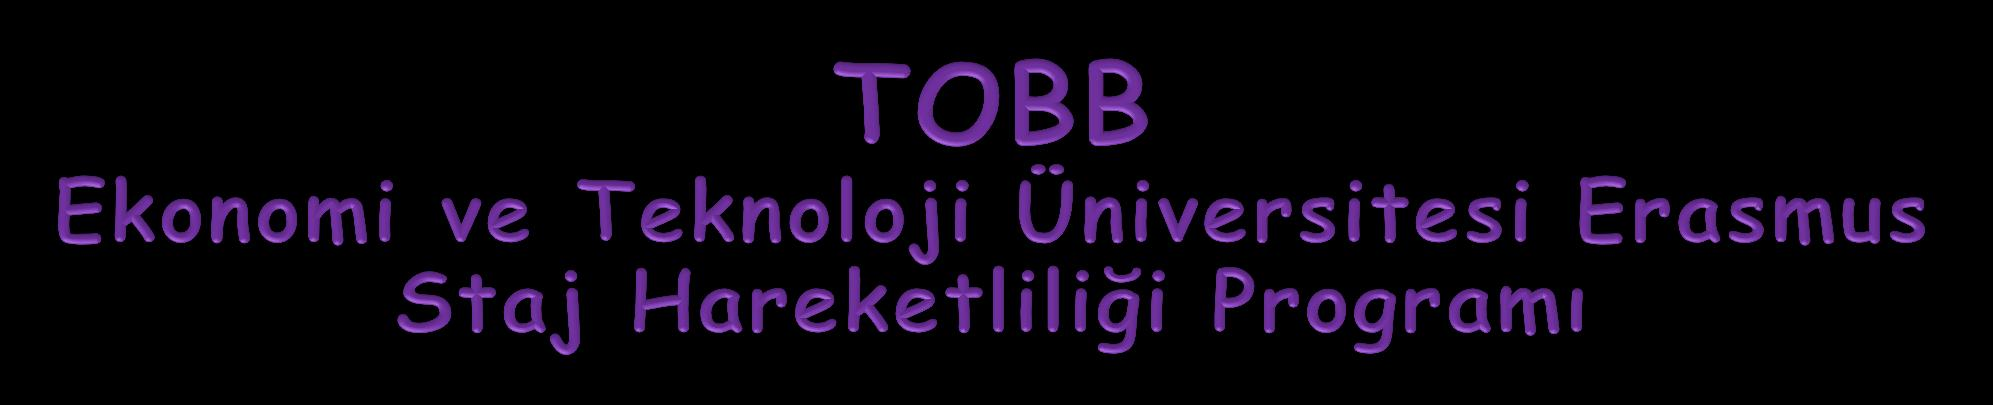 1 TOBB University of Economics and